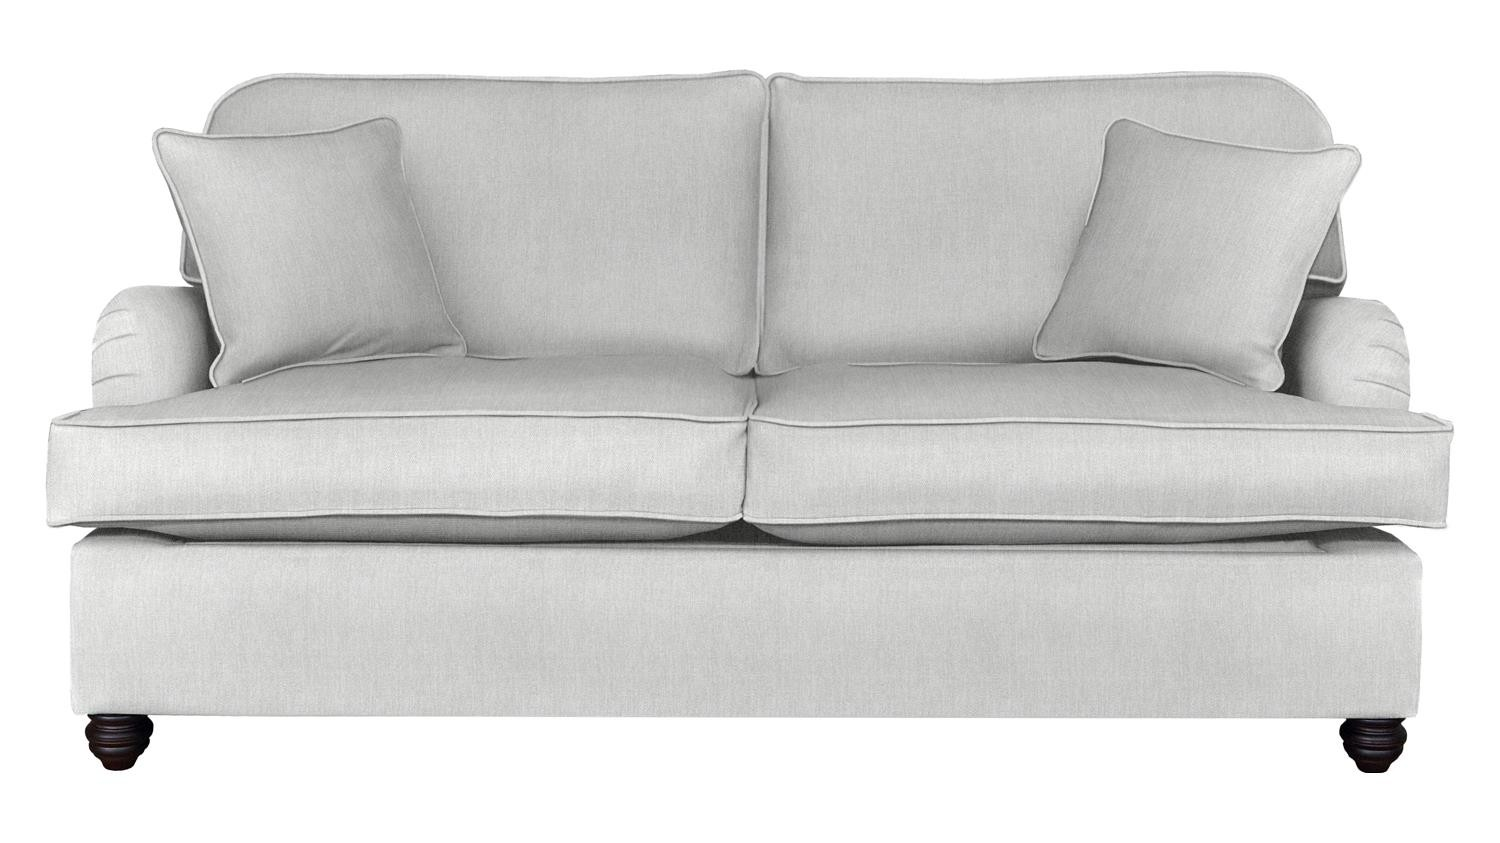 The Downton 2 Seater Sofa Bed